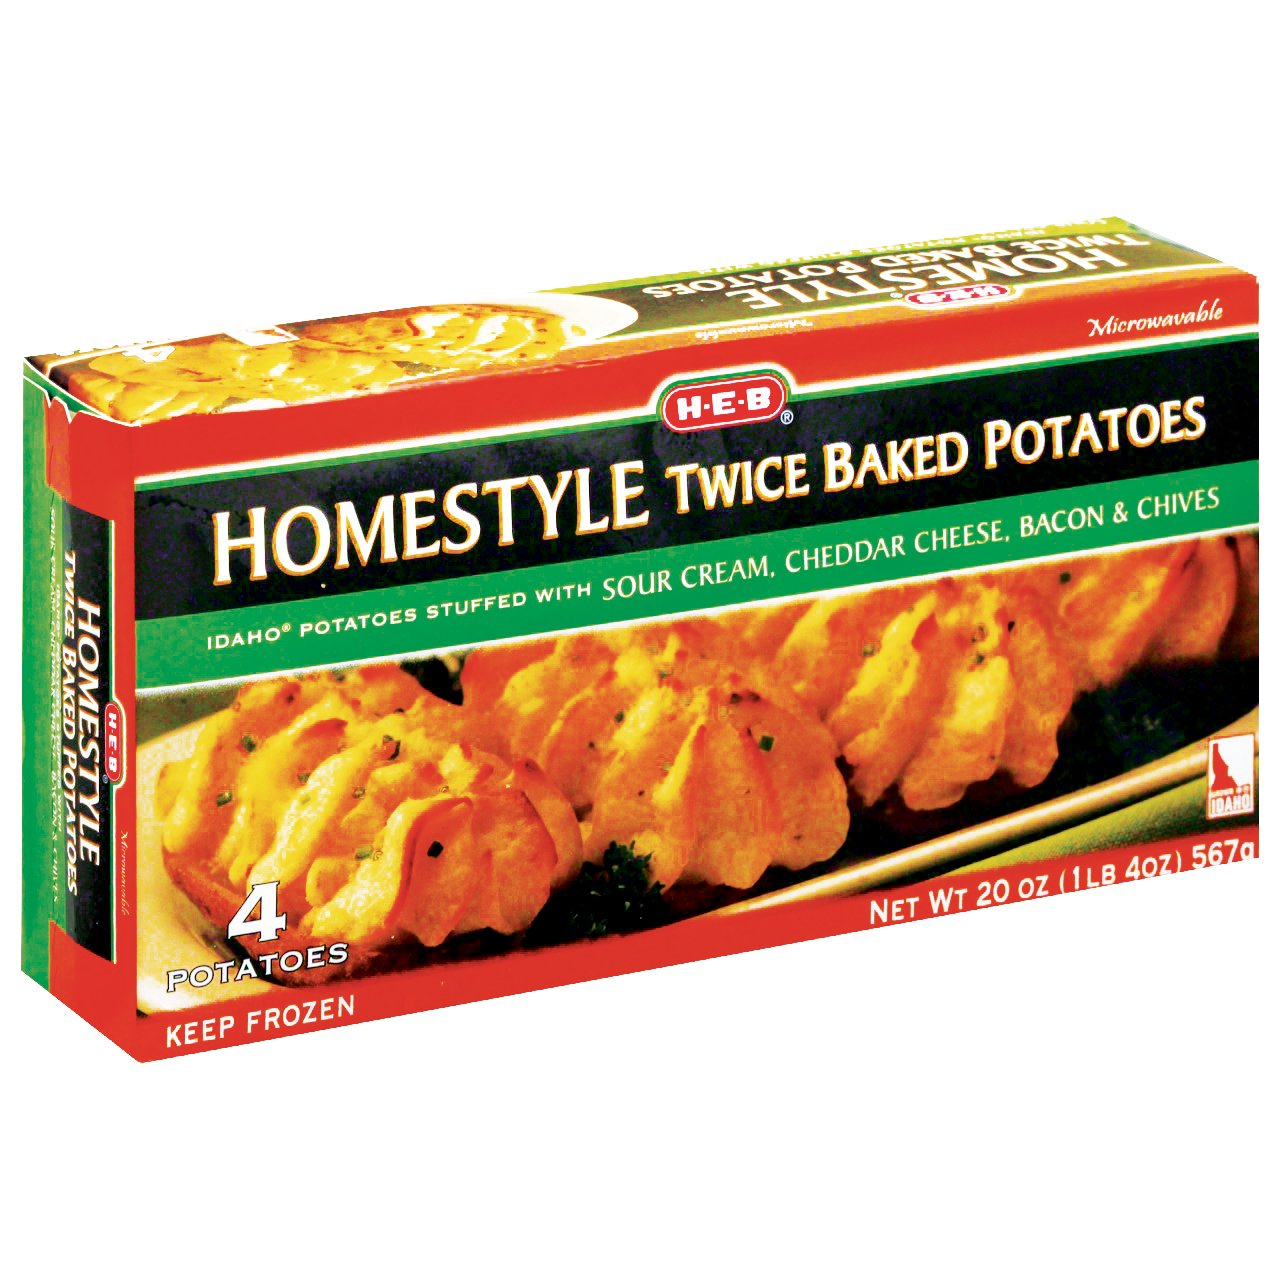 H E B Homestyle Twice Baked Potatoes Shop Potatoes Carrots At H E B